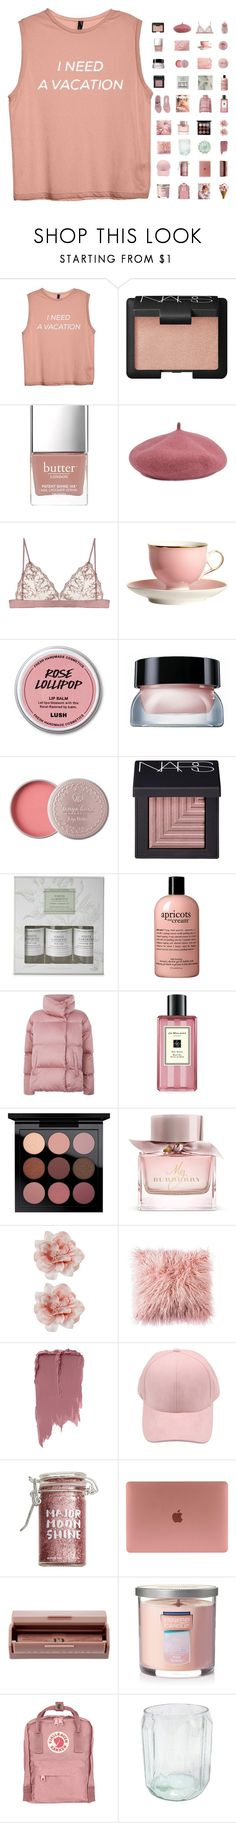 """6424"" by tiffanyelinor ❤ liked on Polyvore featuring NARS Cosmetics, Butter London, H&M, Bobbi Brown Cosmetics, Williams-Sonoma, ULTA, Weekend Max Mara, Jo Malone, MAC Cosmetics and Burberry"